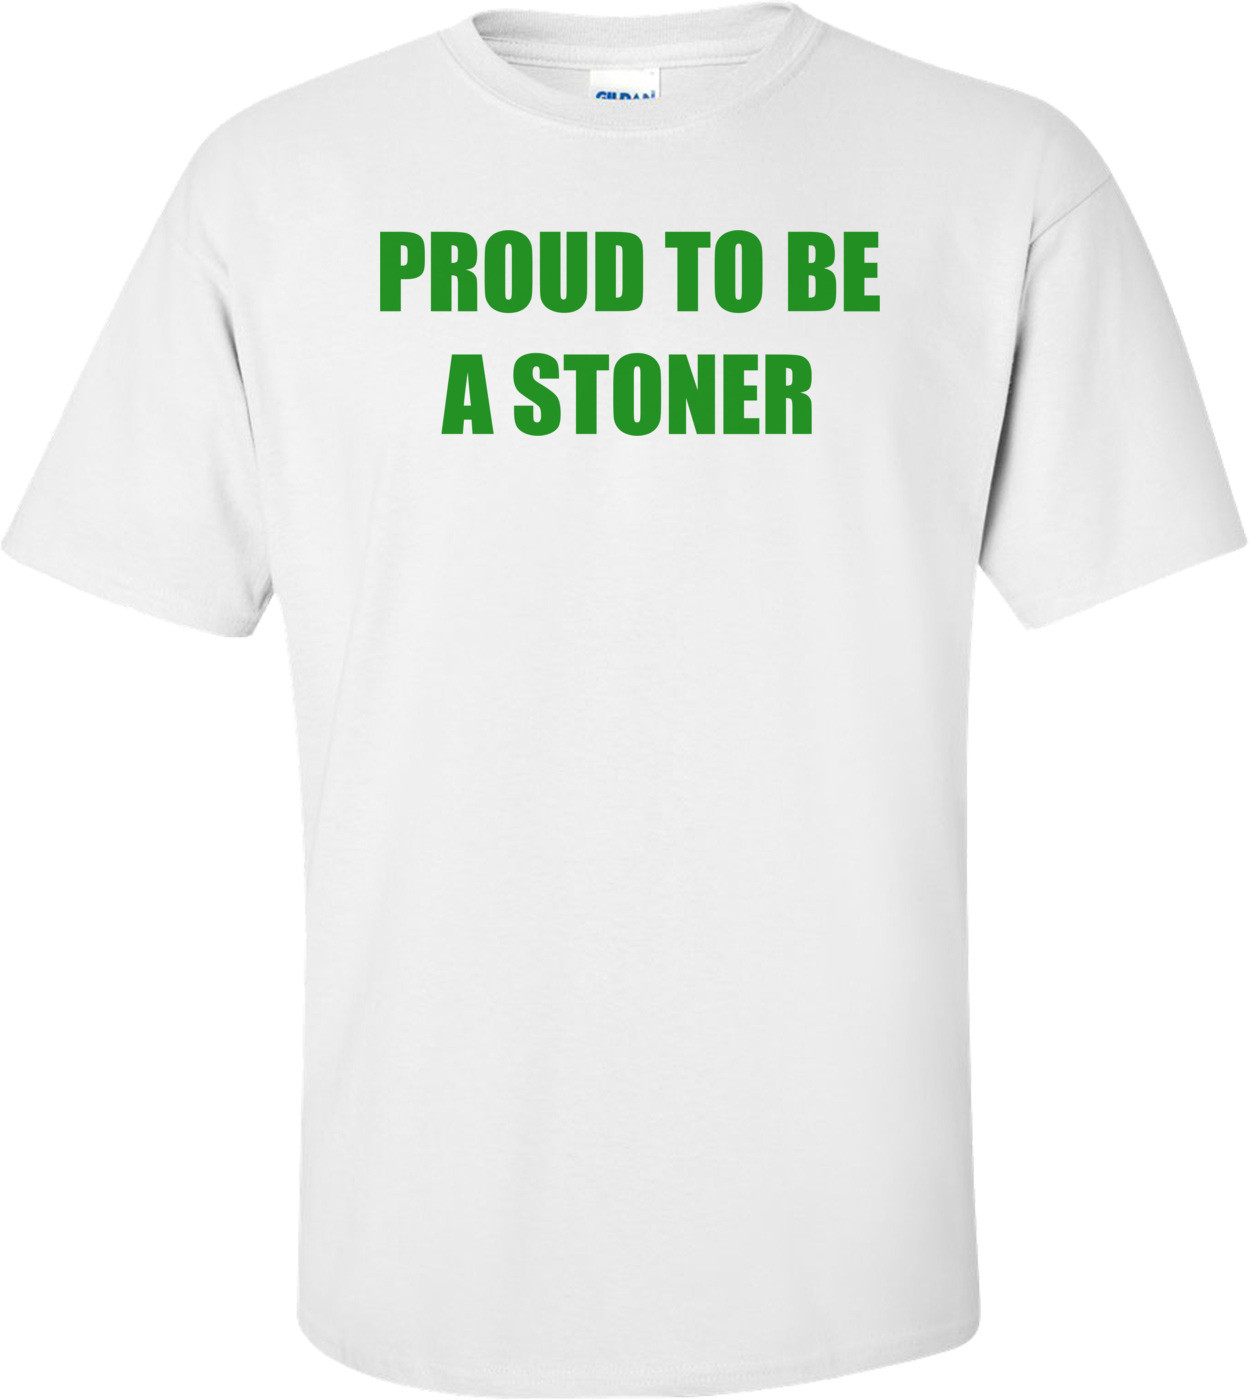 PROUD TO BE A STONER Shirt